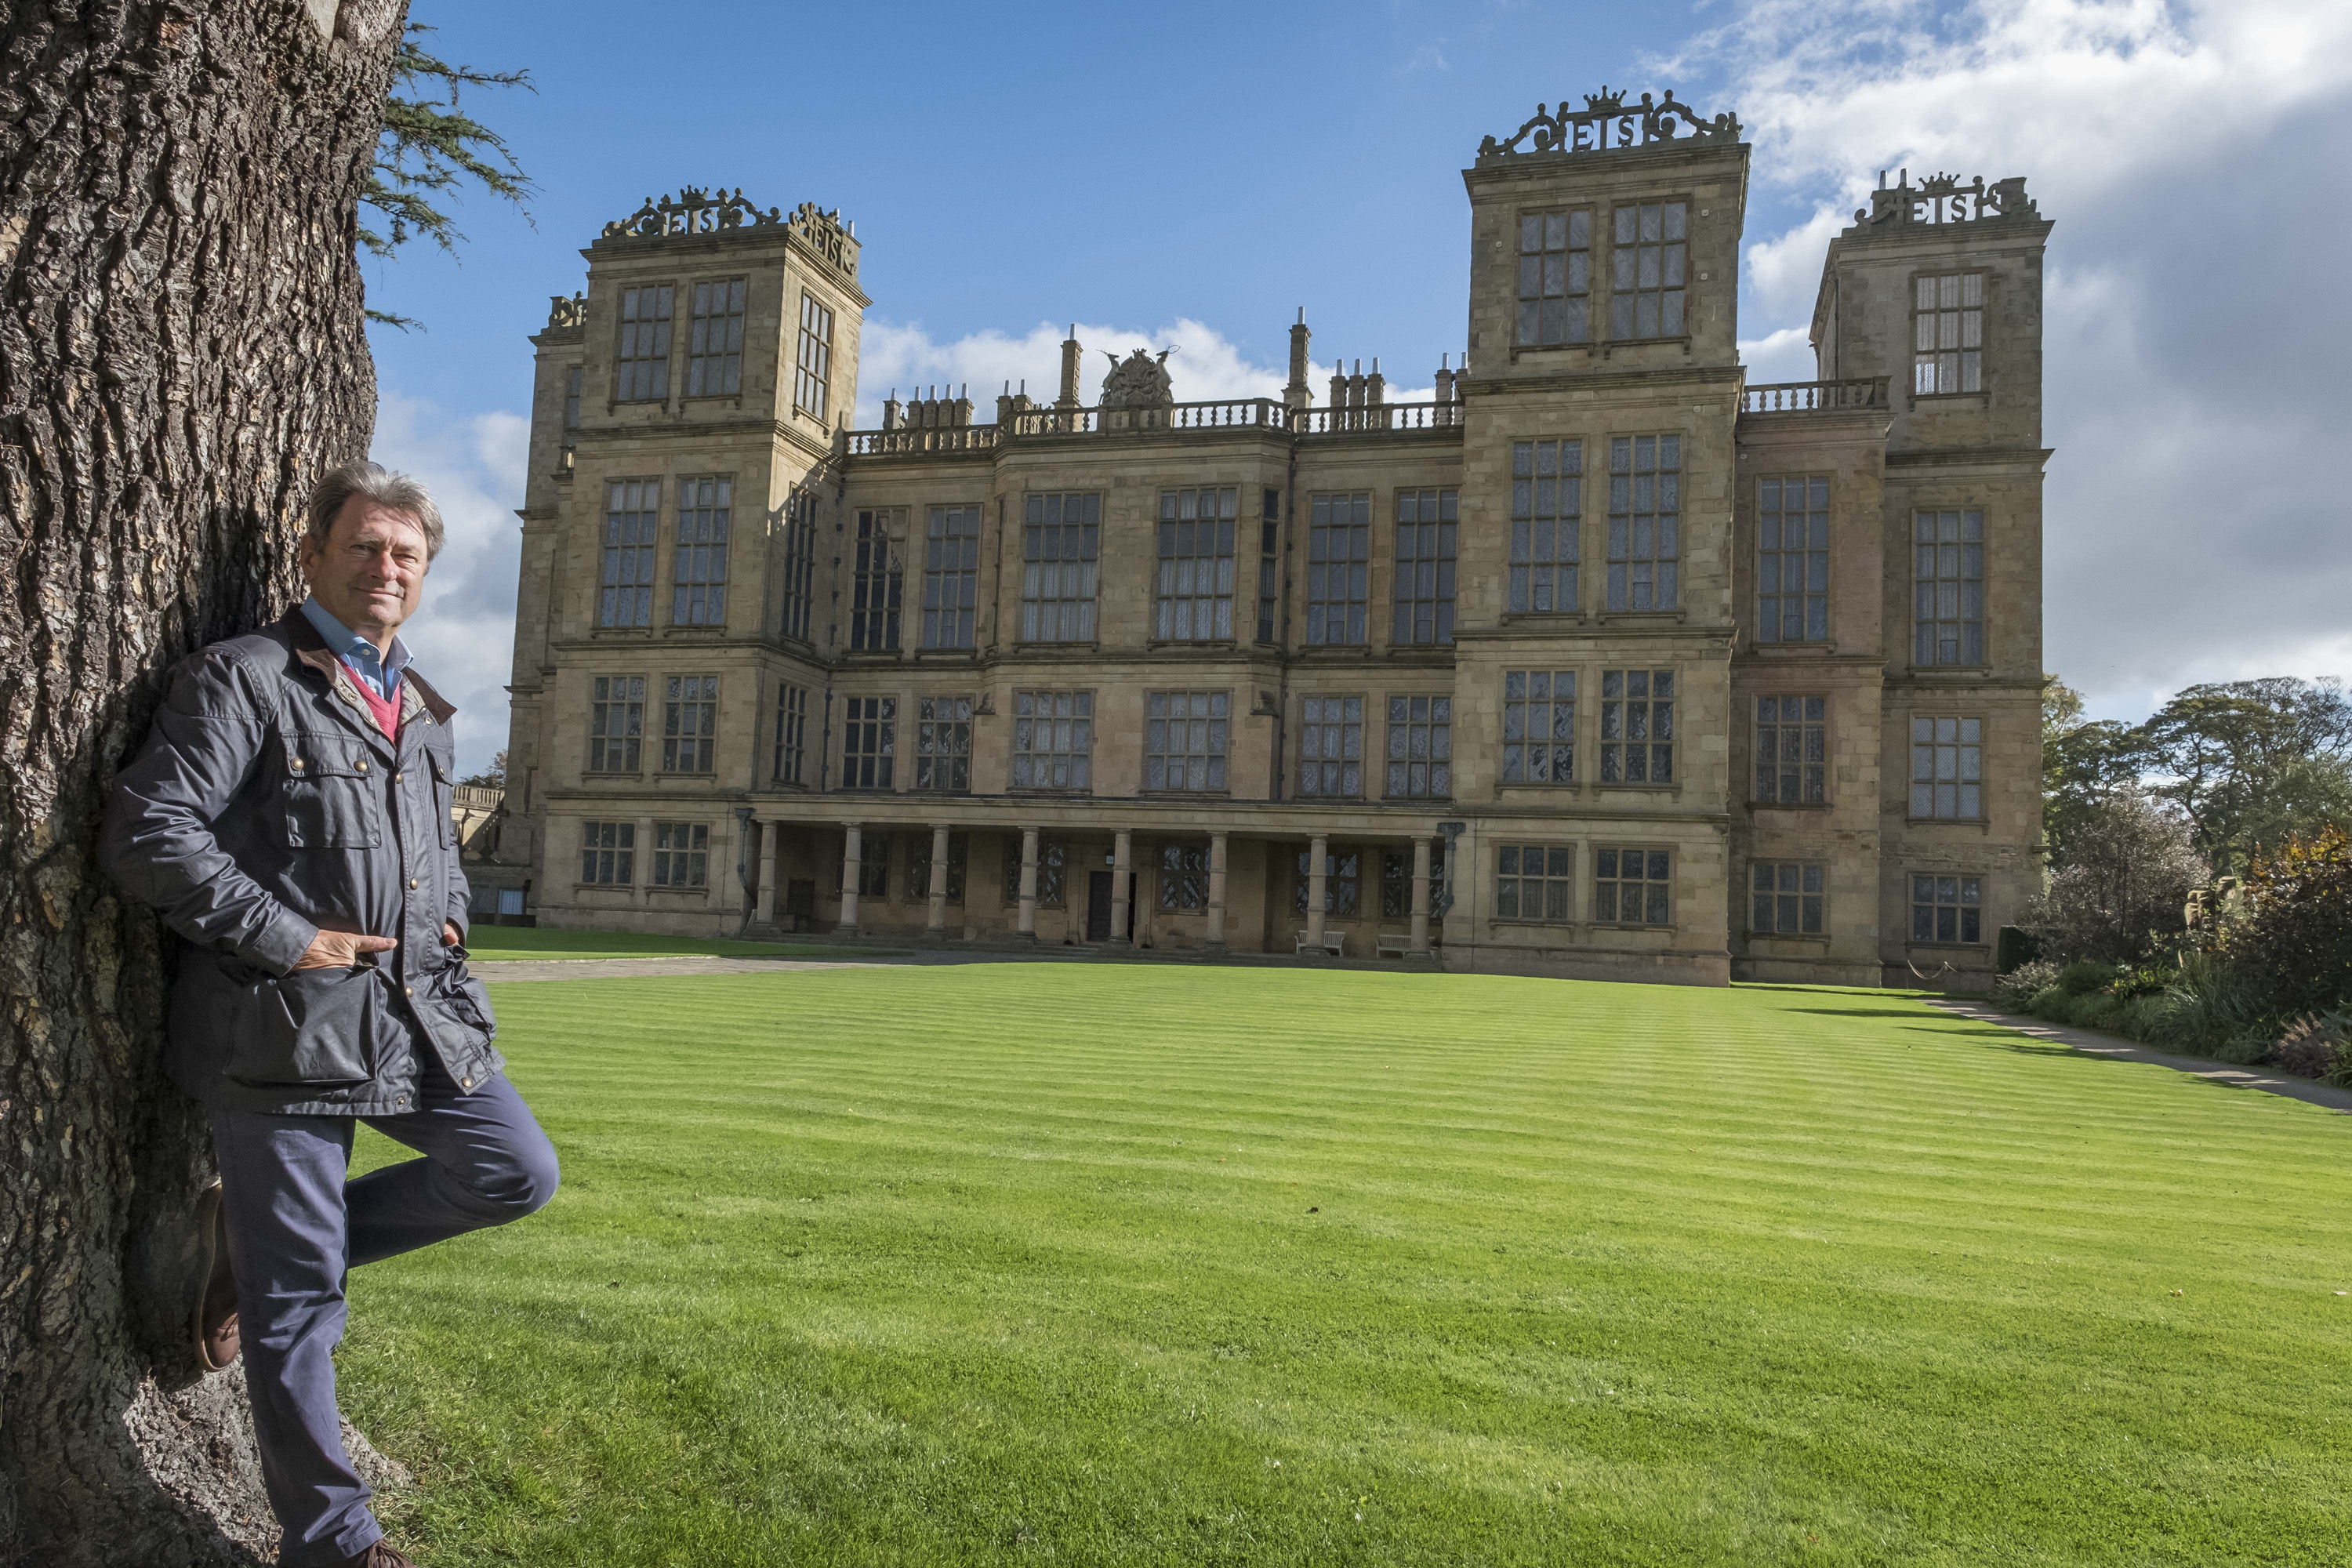 Alan Titchmarsh admires Hardwick Hall's outrageous glass frontage and six turrets